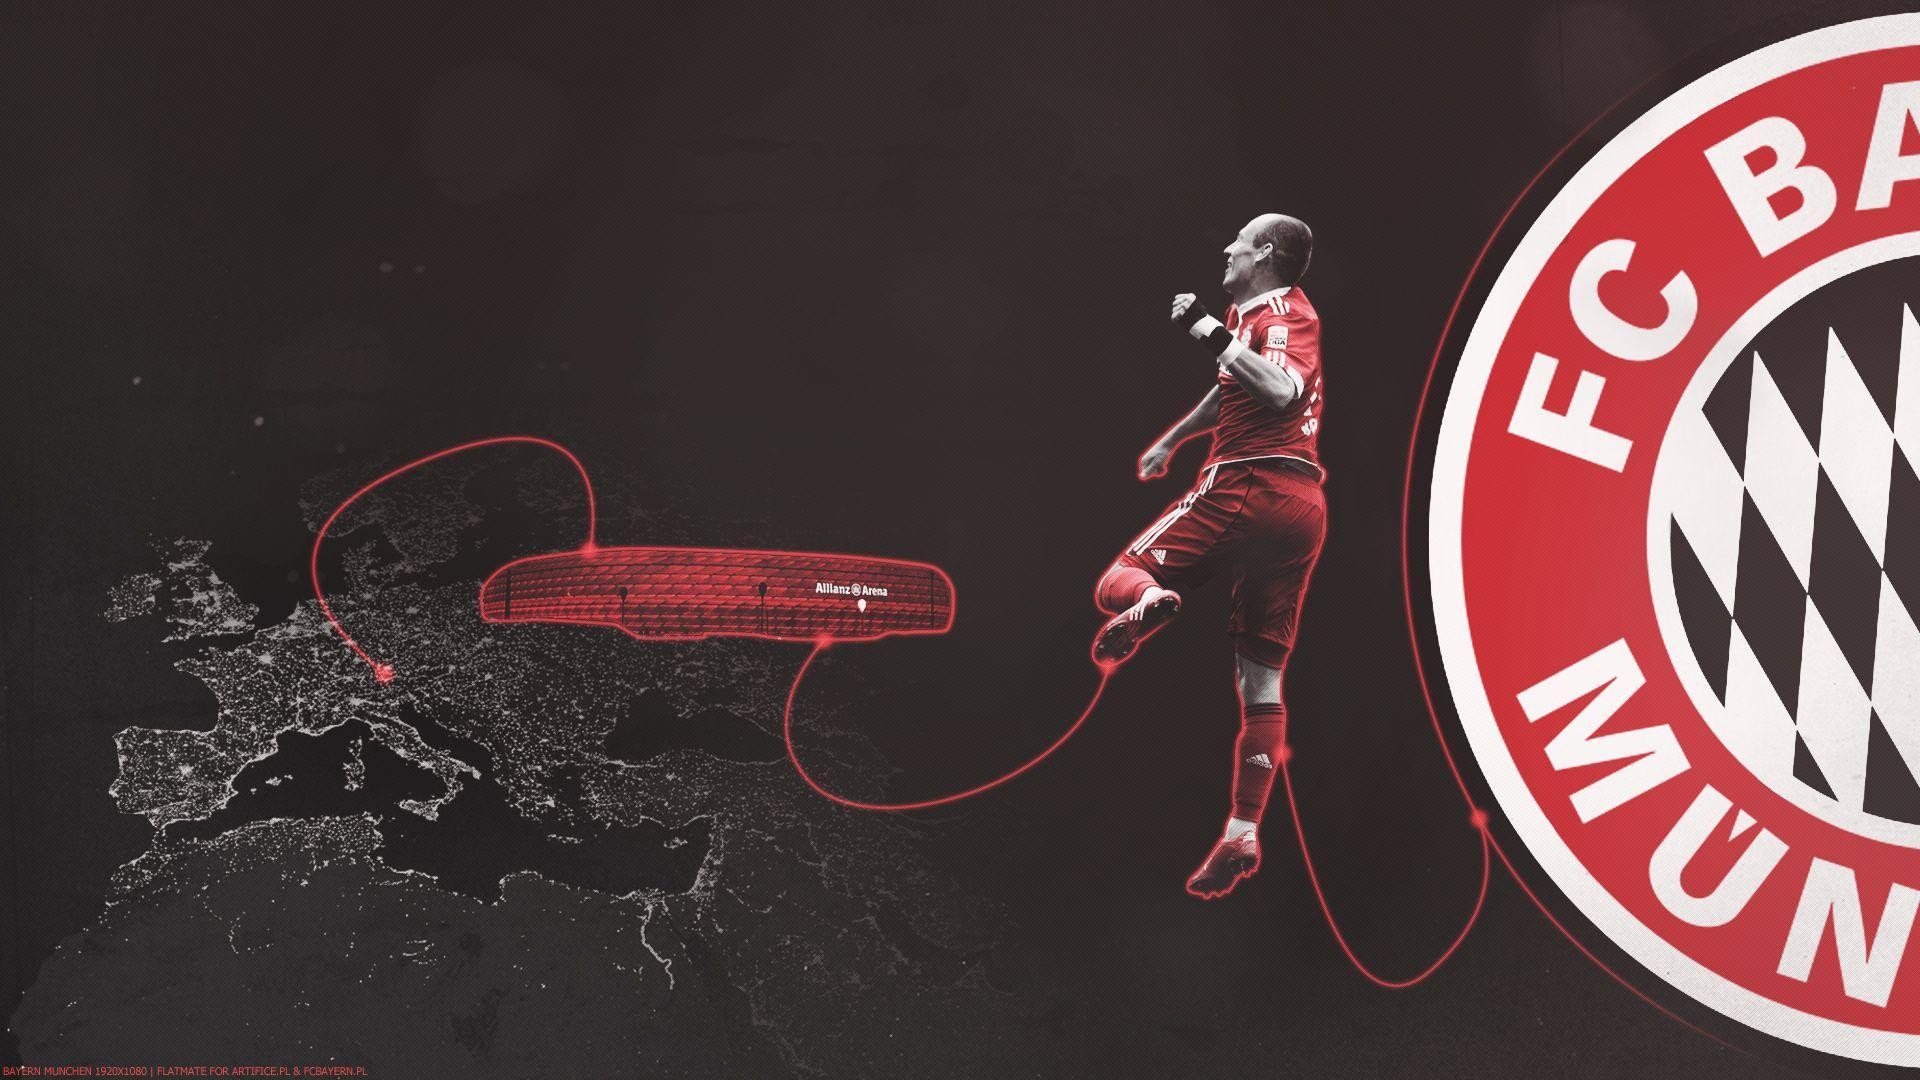 FC Bayern Munich HD Wallpapers And Photos download